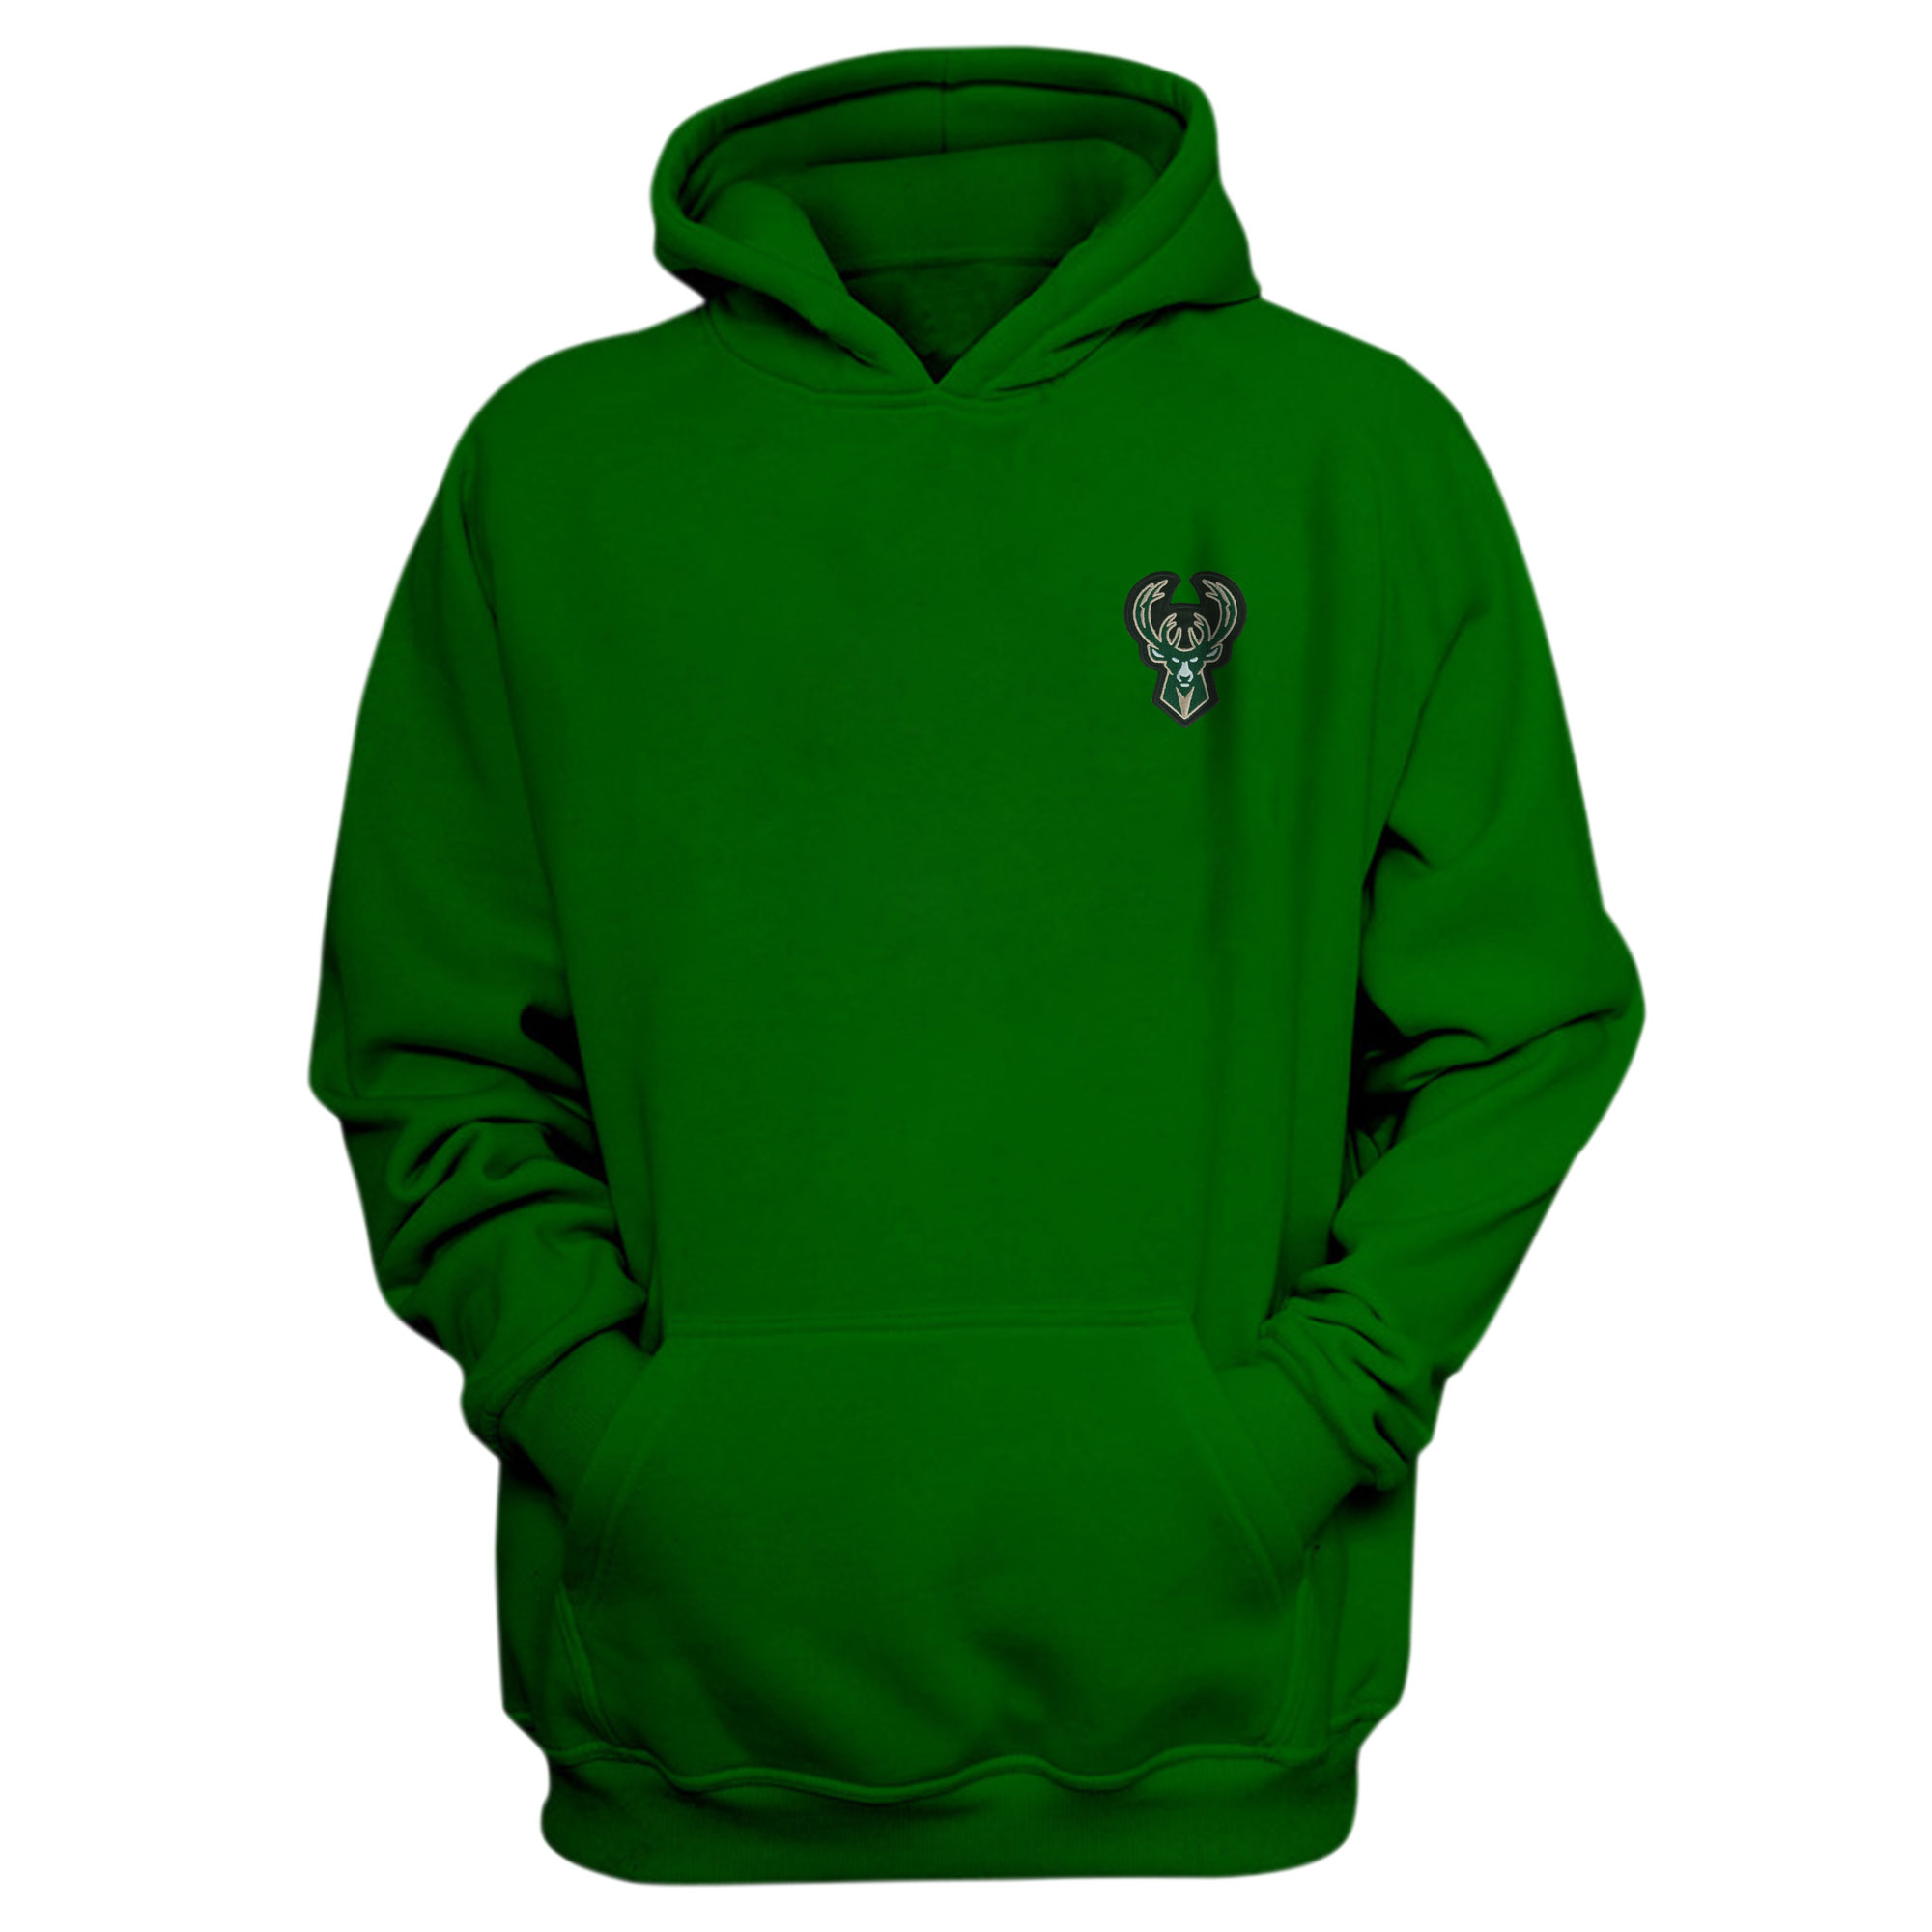 Milwaukee Bucks Hoodie (Örme)  (HD-GRN-EMBR-BUCKS)